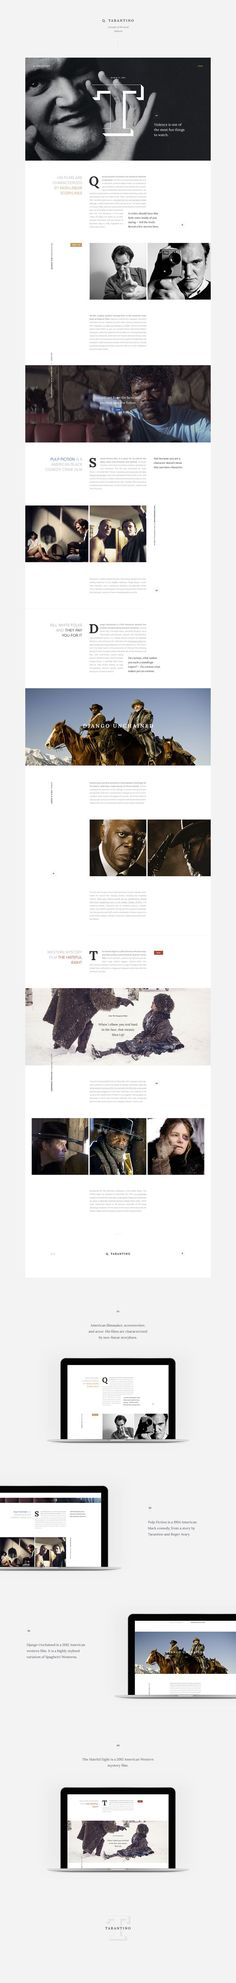 I love when designers are able to translate a classic editorial design to the web, even if it's just for static mocks.